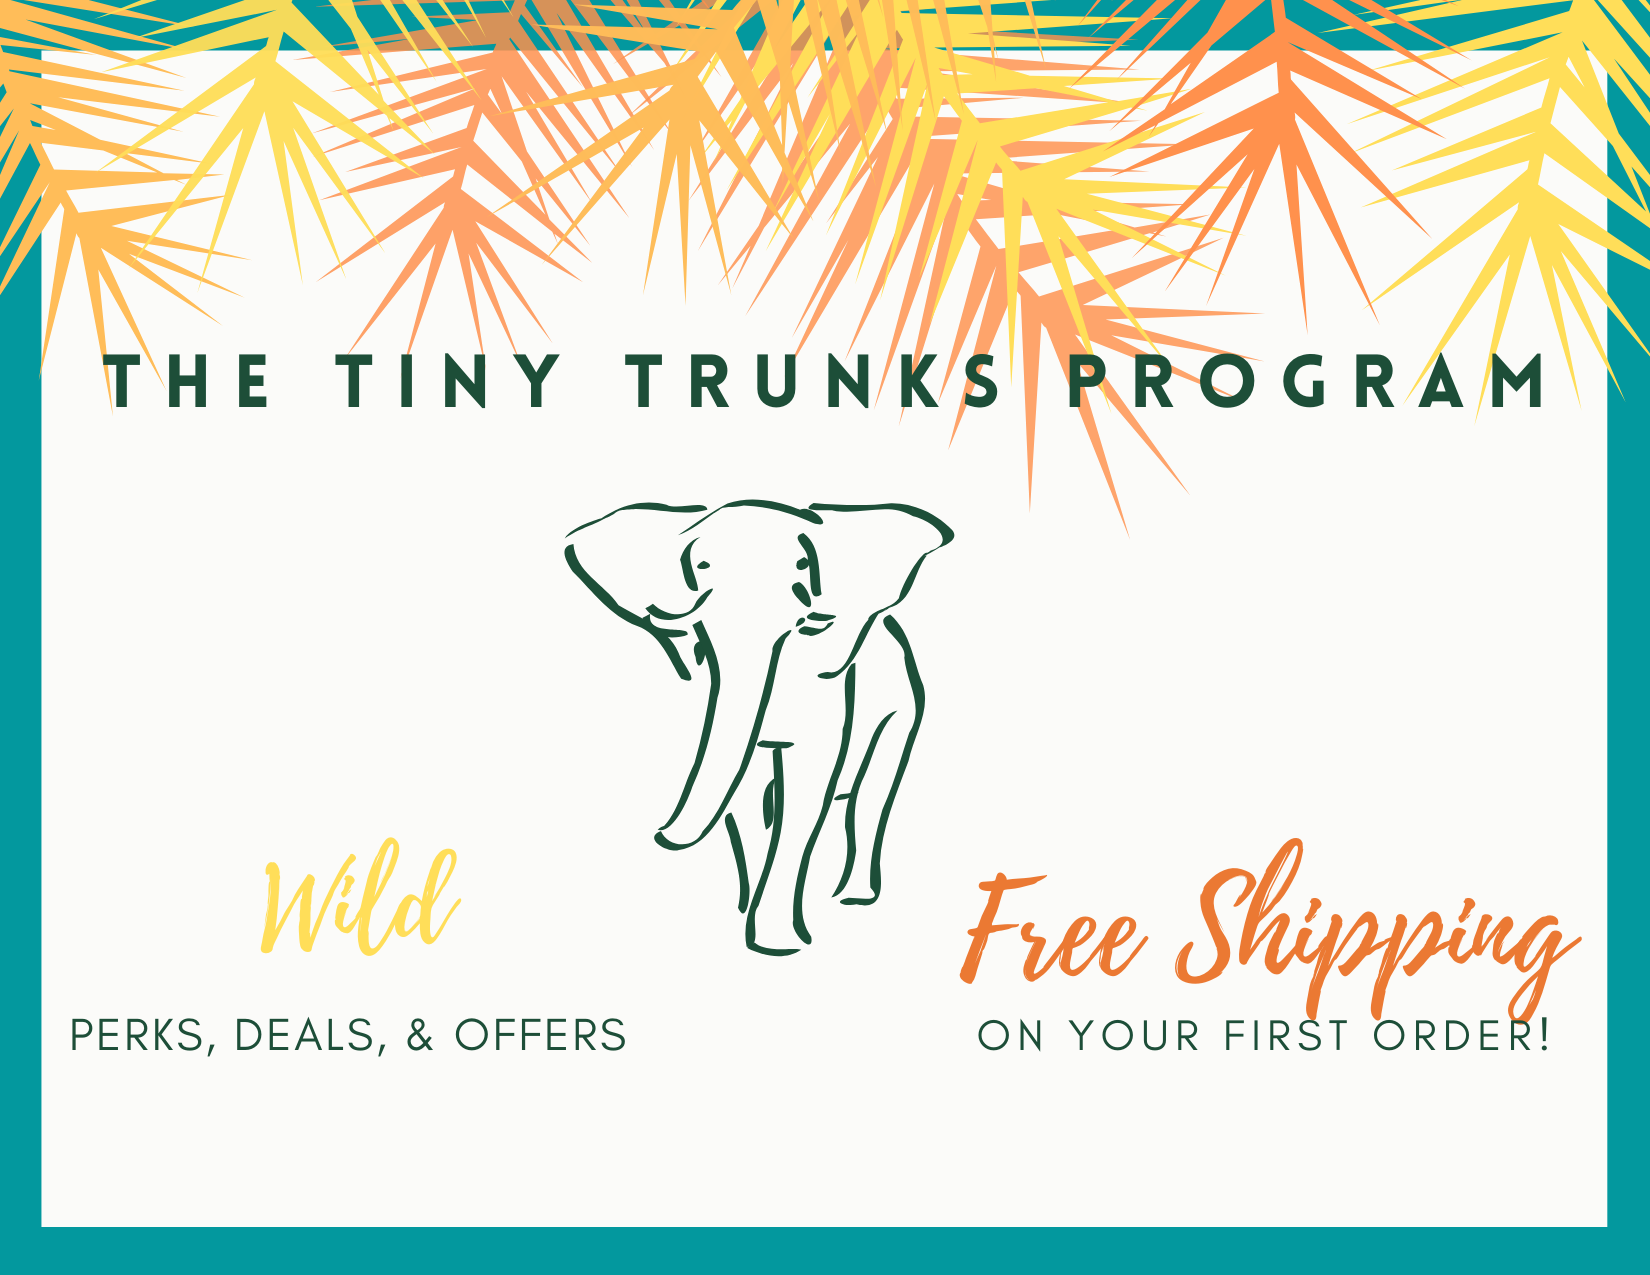 Tiny Trunks Program Free Shipping